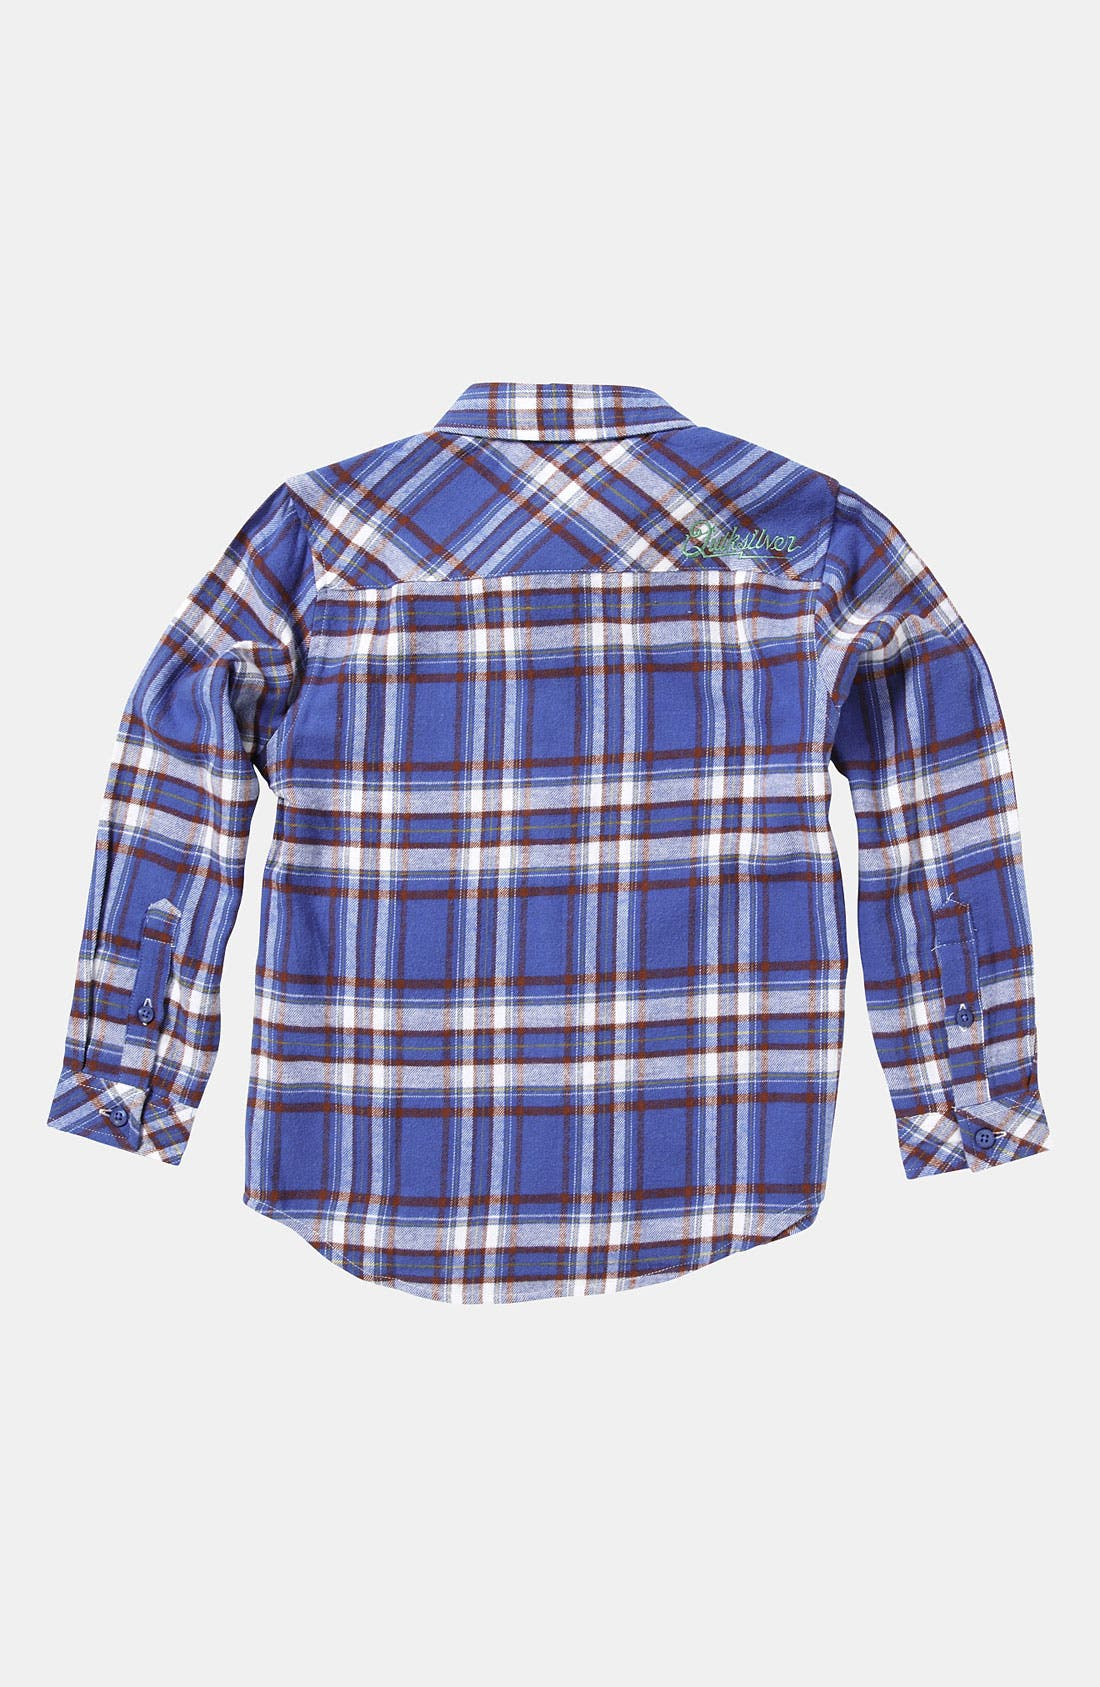 Alternate Image 2  - Quiksilver 'Bunga Bunga' Woven Shirt (Little Boys)